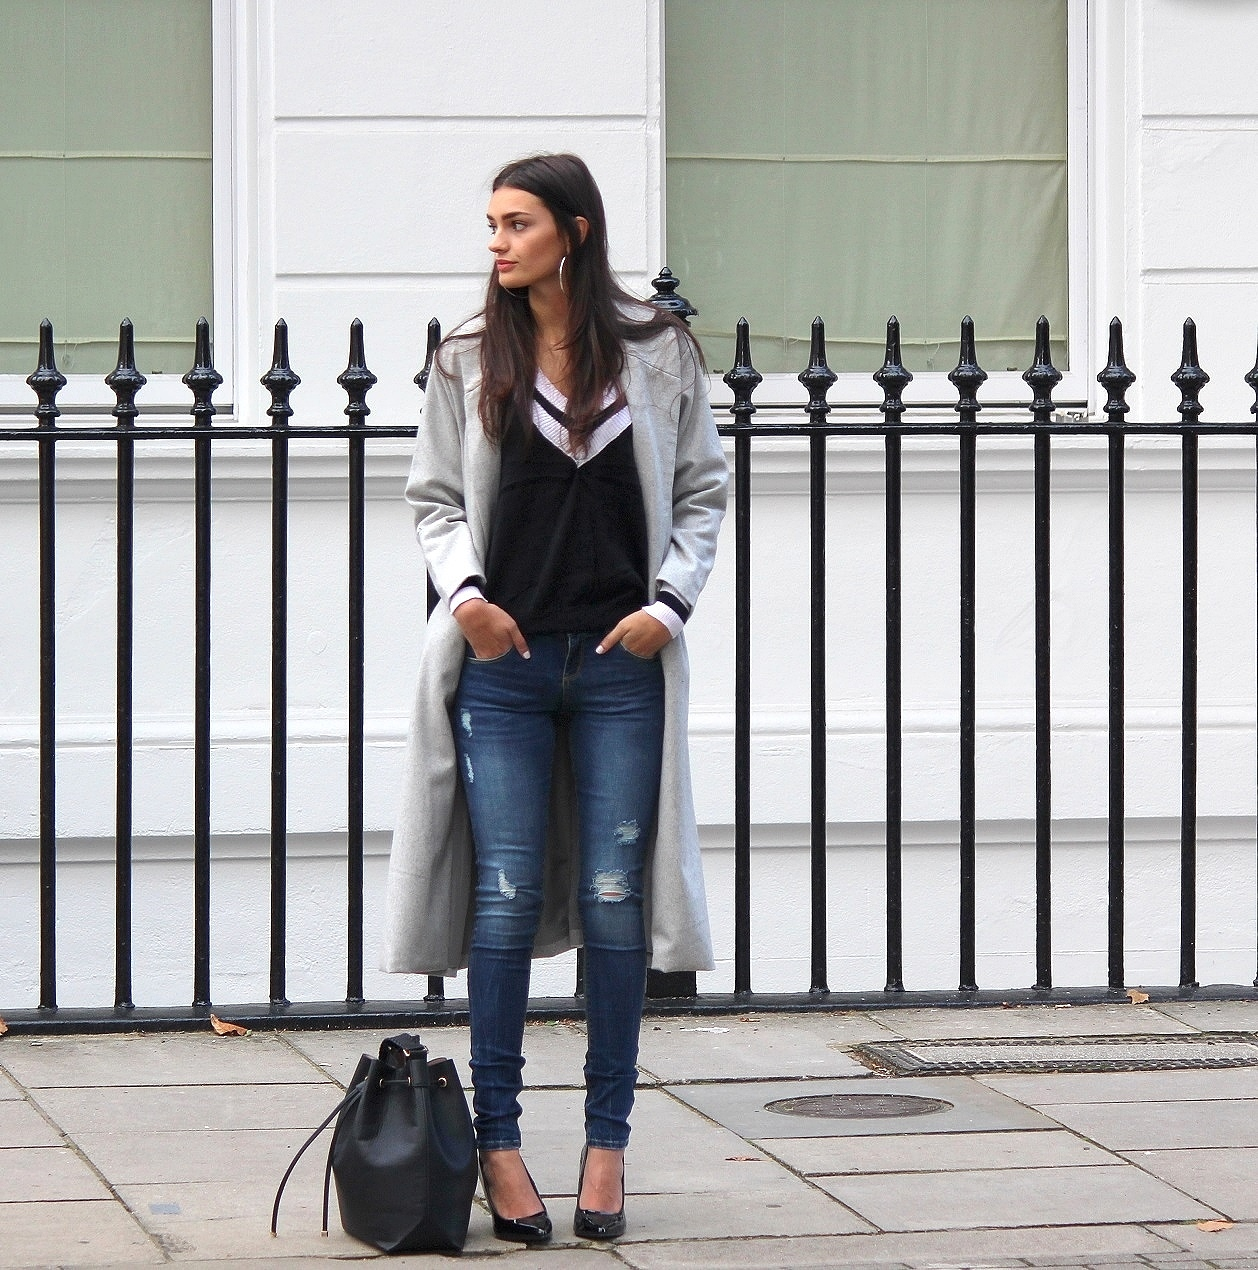 peexo fashion blogger wearing distressed denim and longline coat